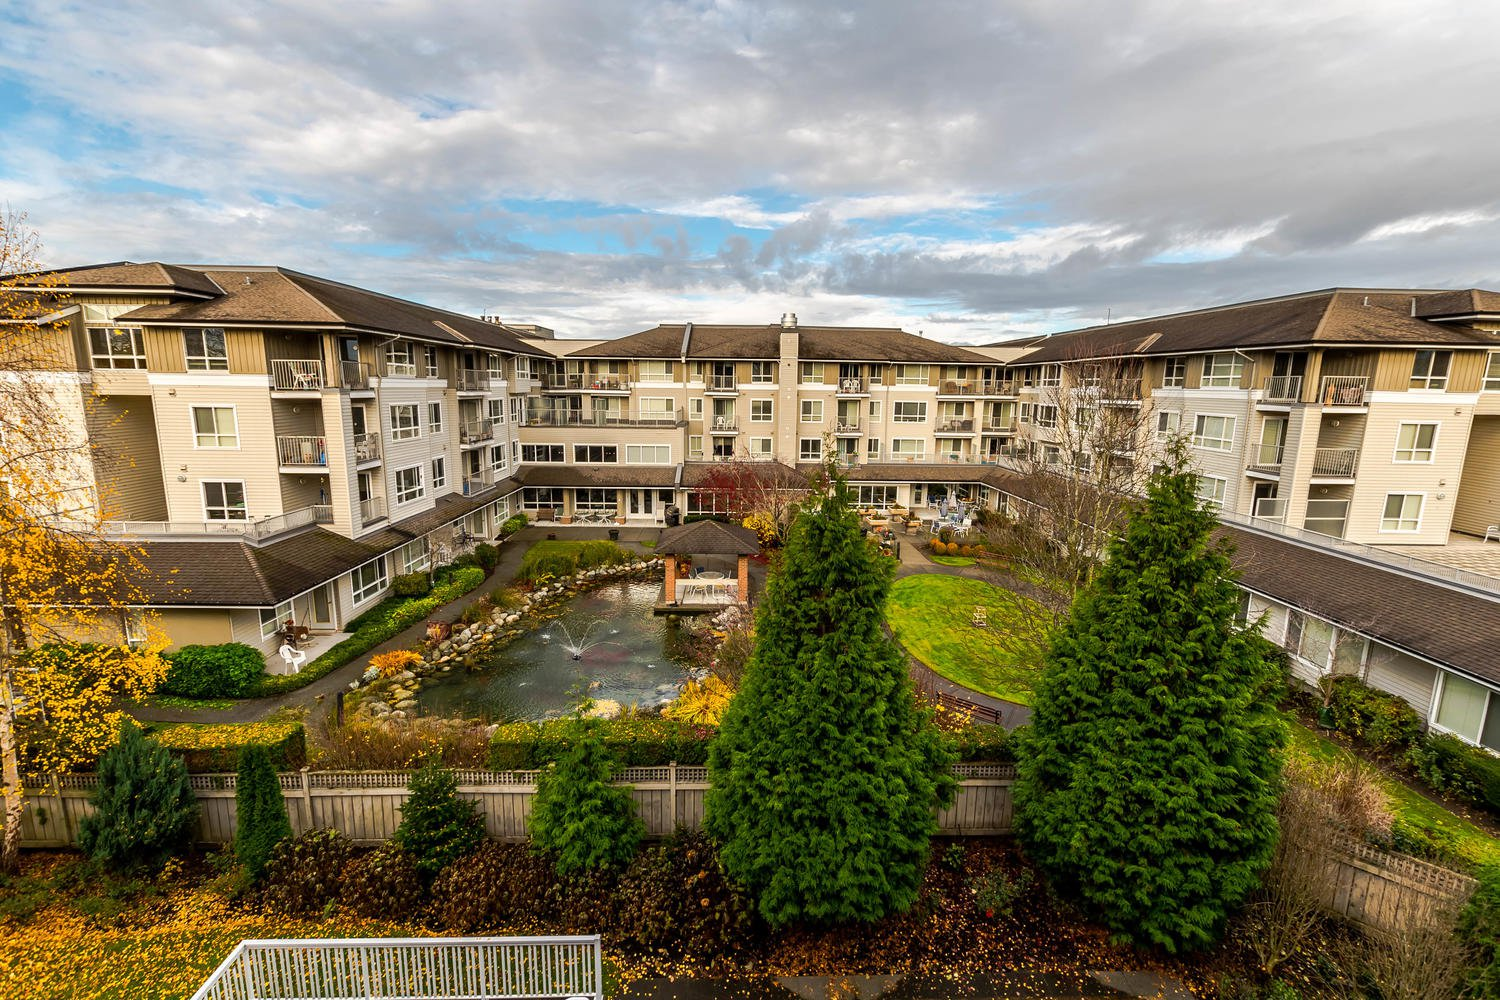 Photo 21: Photos: #408 20750 Duncan Way: Langley City Condo for sale (Langley)  : MLS®# R2221641